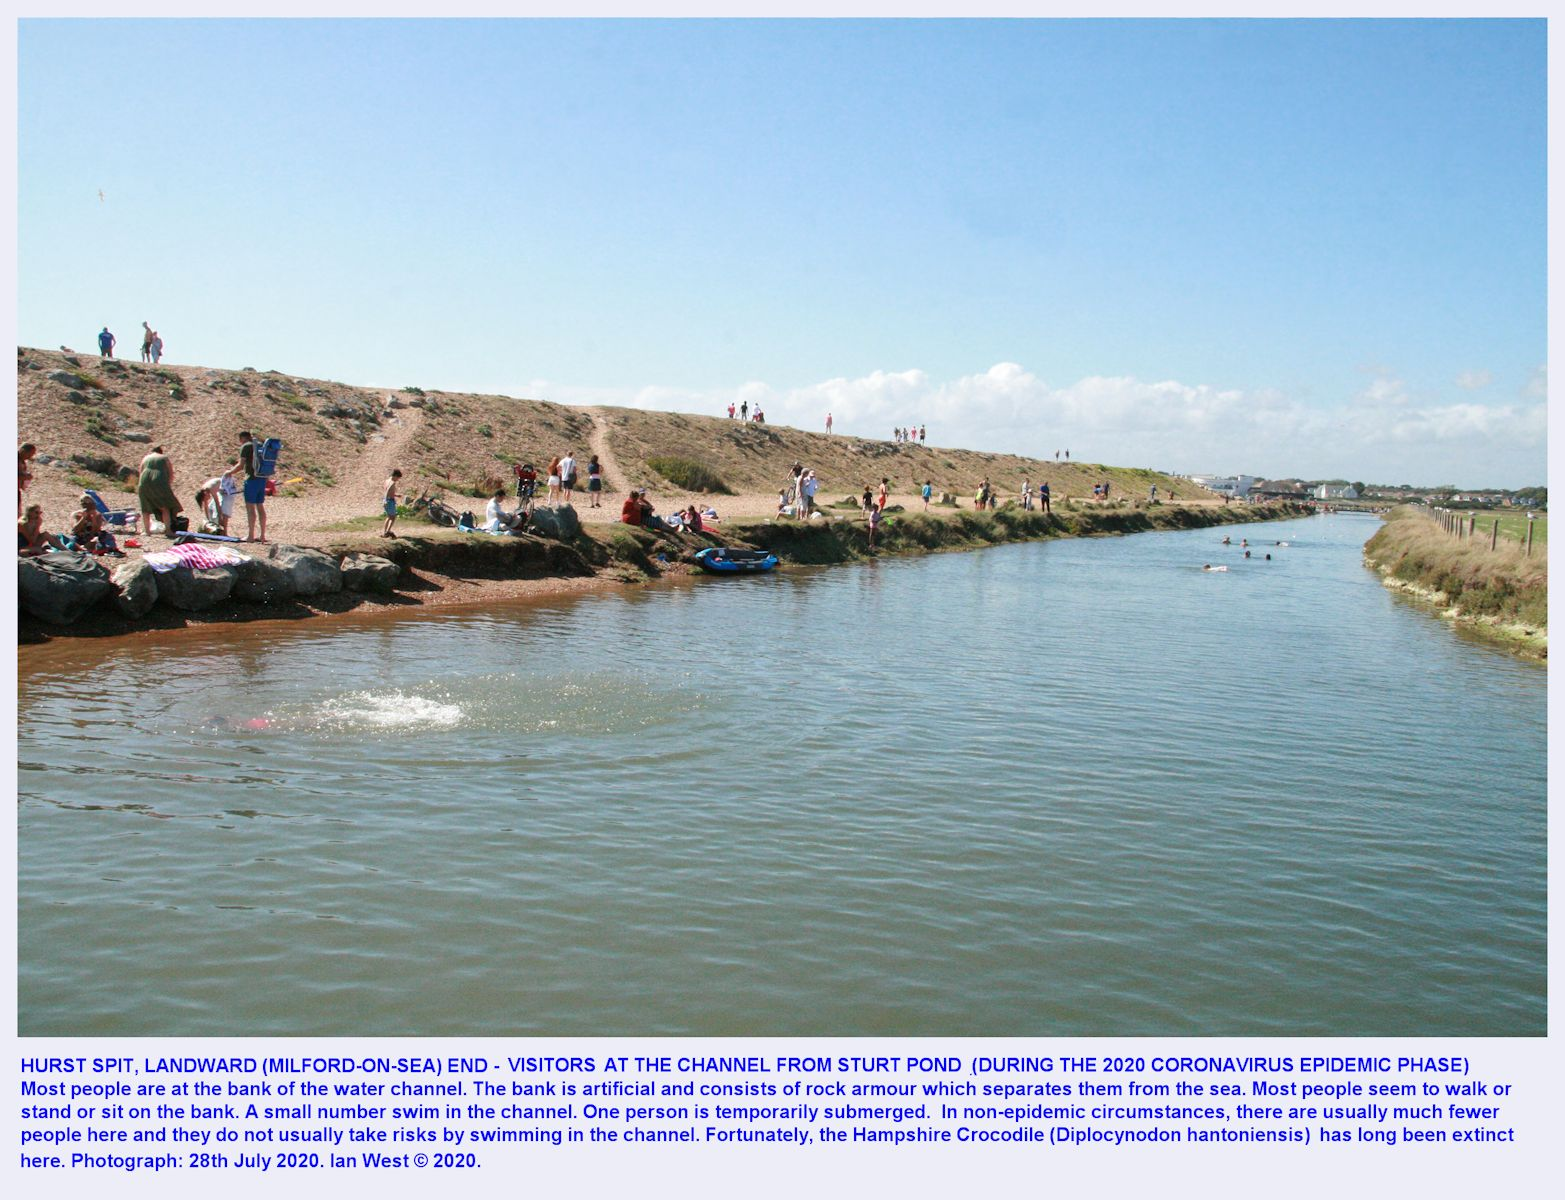 Human activity at the artificial channel from Sturt Pond to the eastern footbridge, Hurst Spit, Milford-on-Sea, during the Coronavirus Epidemic, high tide, August 2020